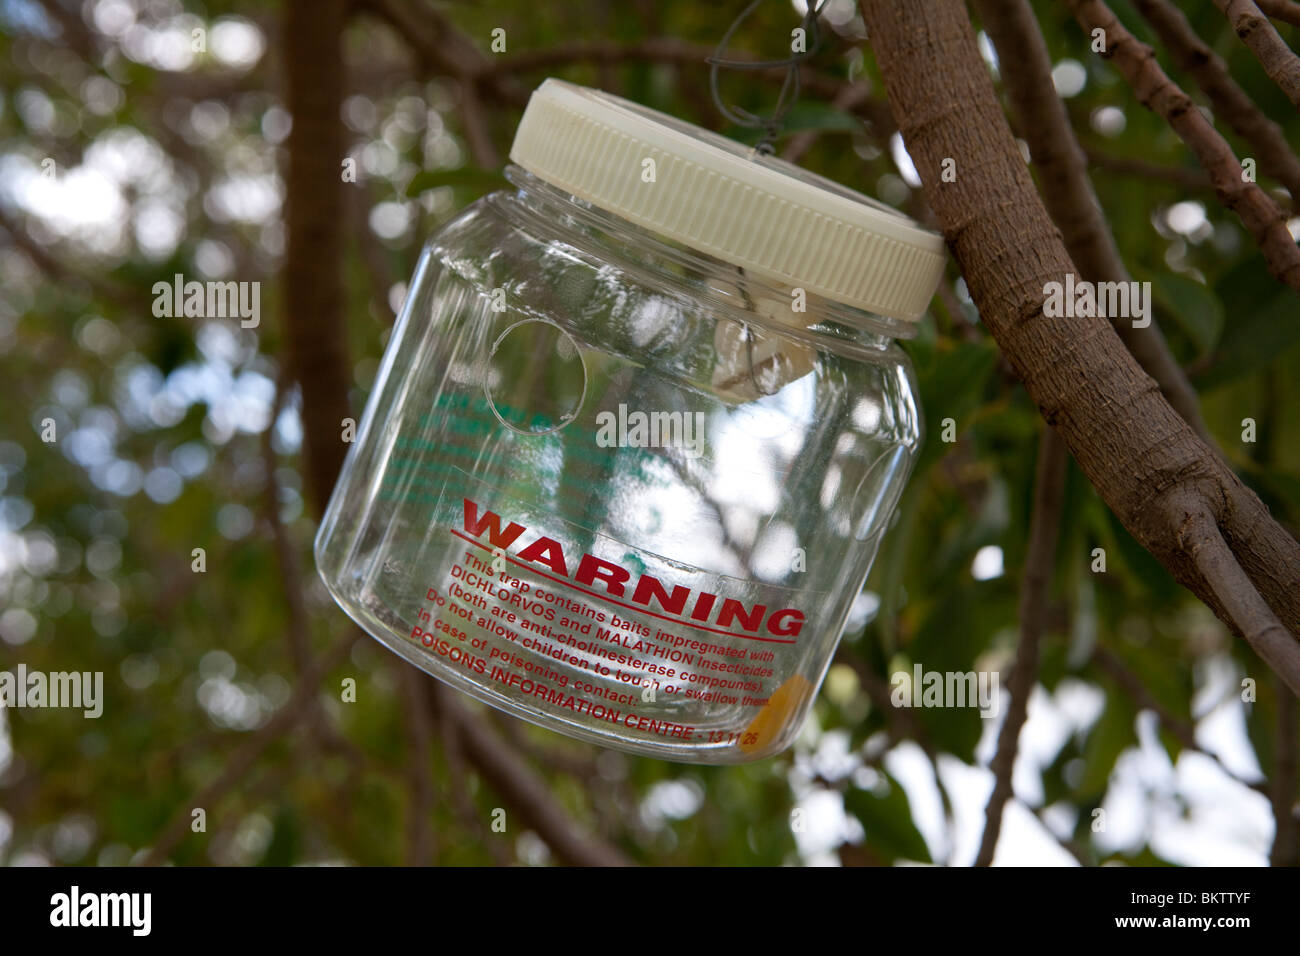 Insect trap containing Dichlorvos and Malathion insecticides hanging in a tree. - Stock Image